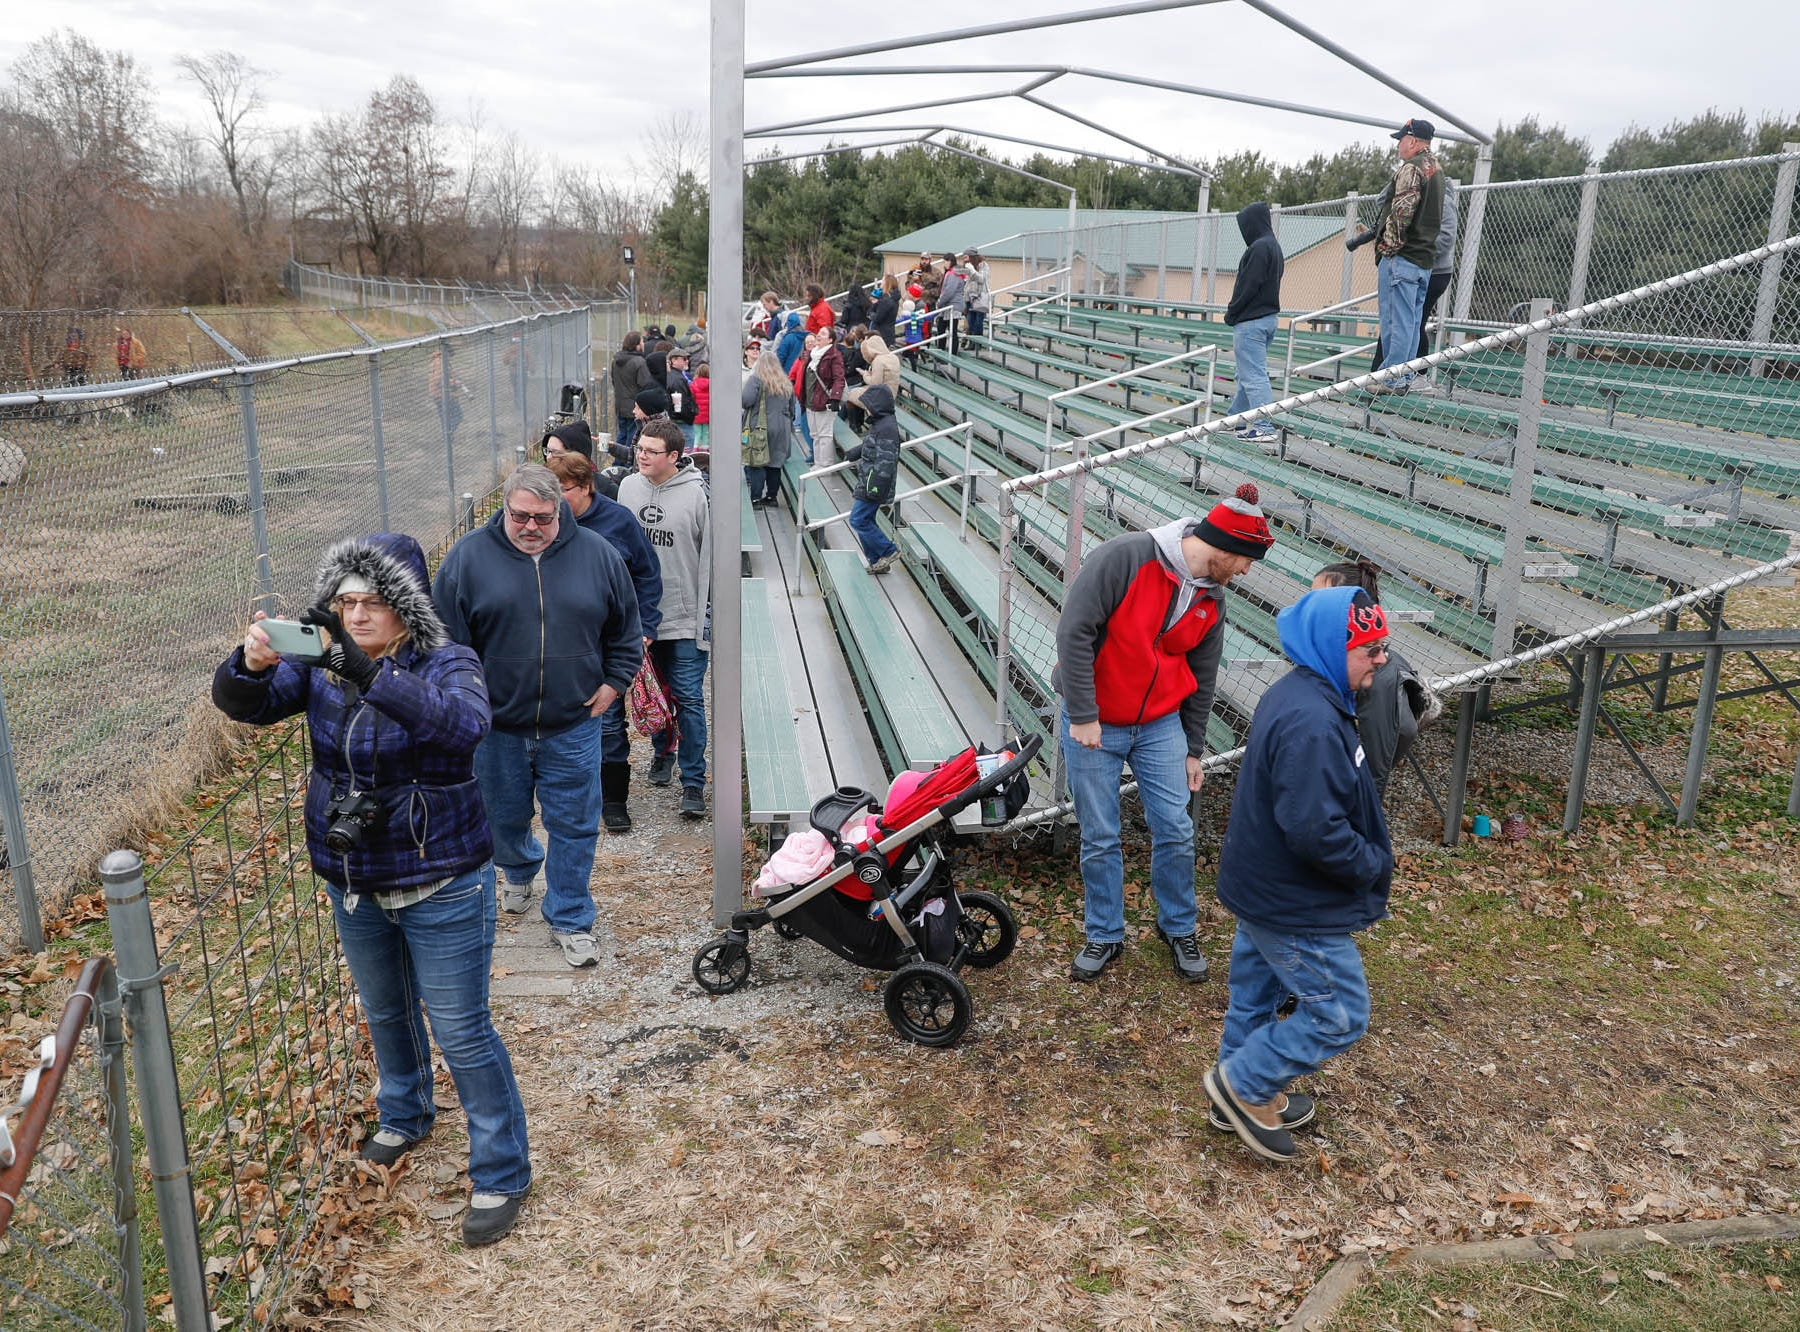 Guests snap photos as they exit the bleachers for a tour during Santa's annual visit to Wolf Park in Battle Ground Indiana on Saturday, Dec. 15, 2018.